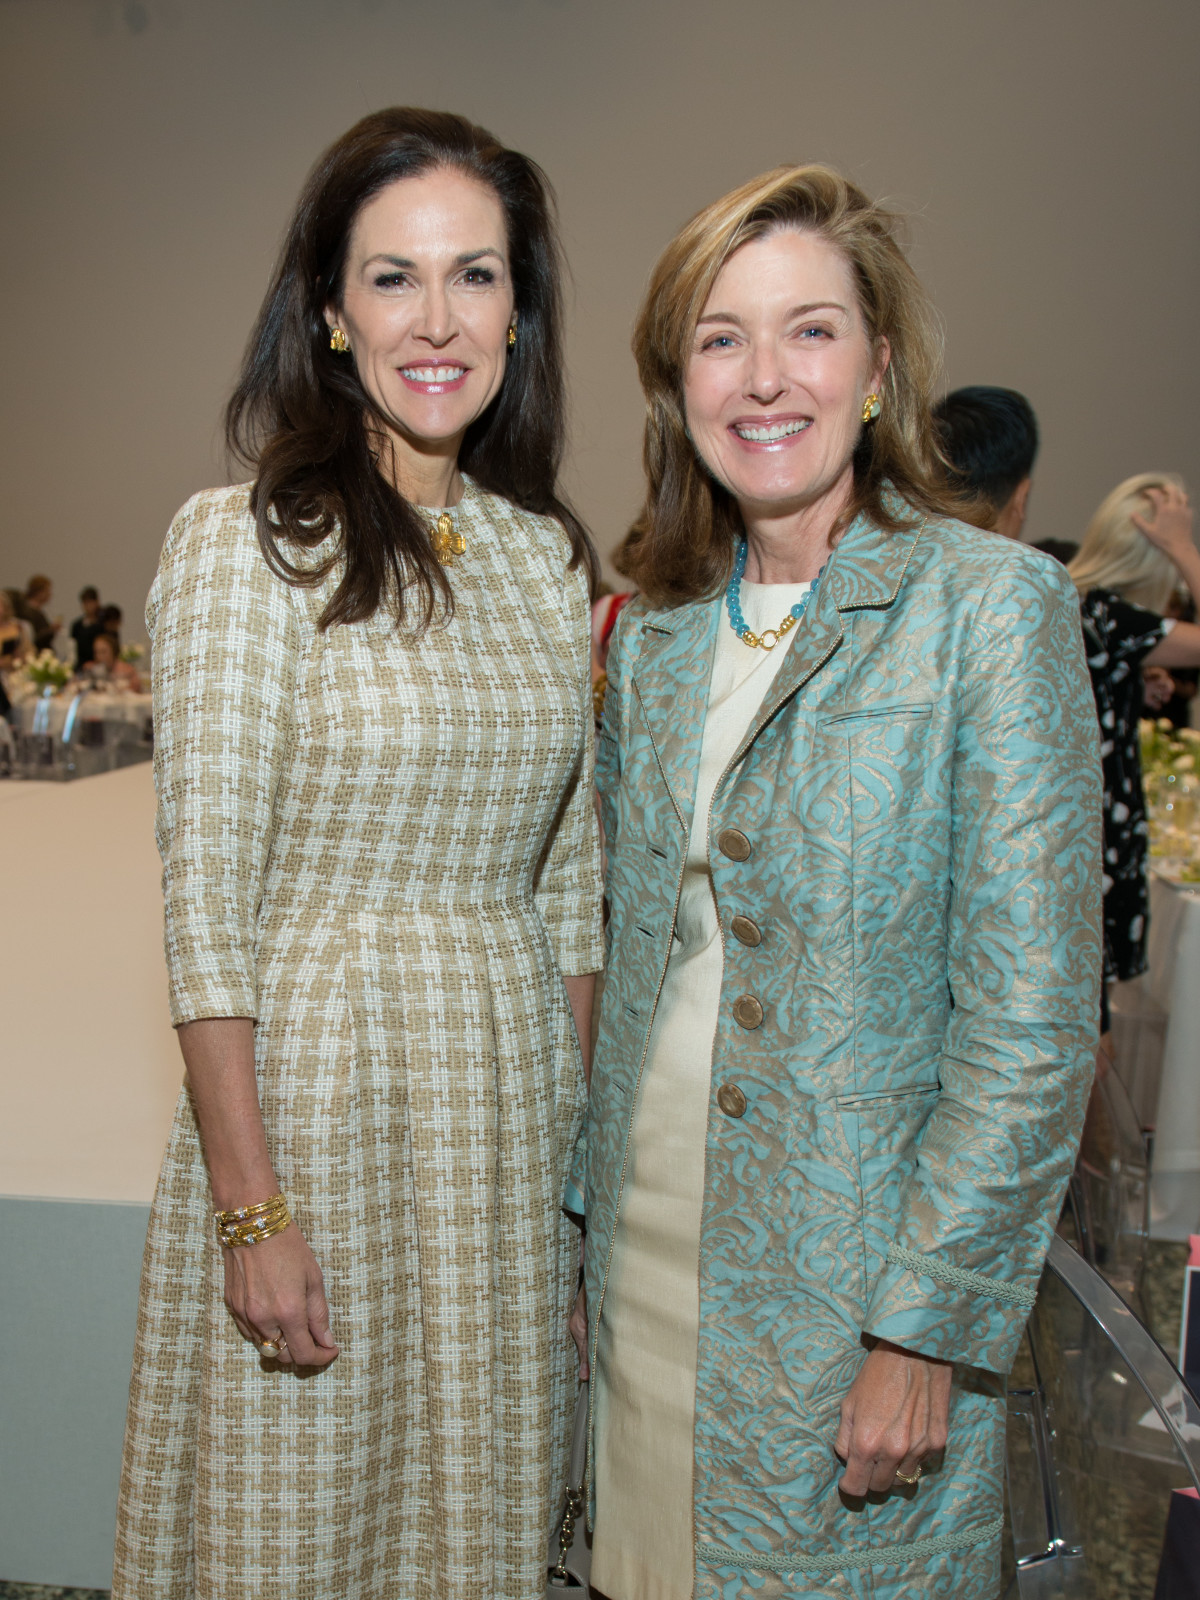 Kathleen Pressler, Carrie Pepi at Oscar de la Renta fashion show at MFAH